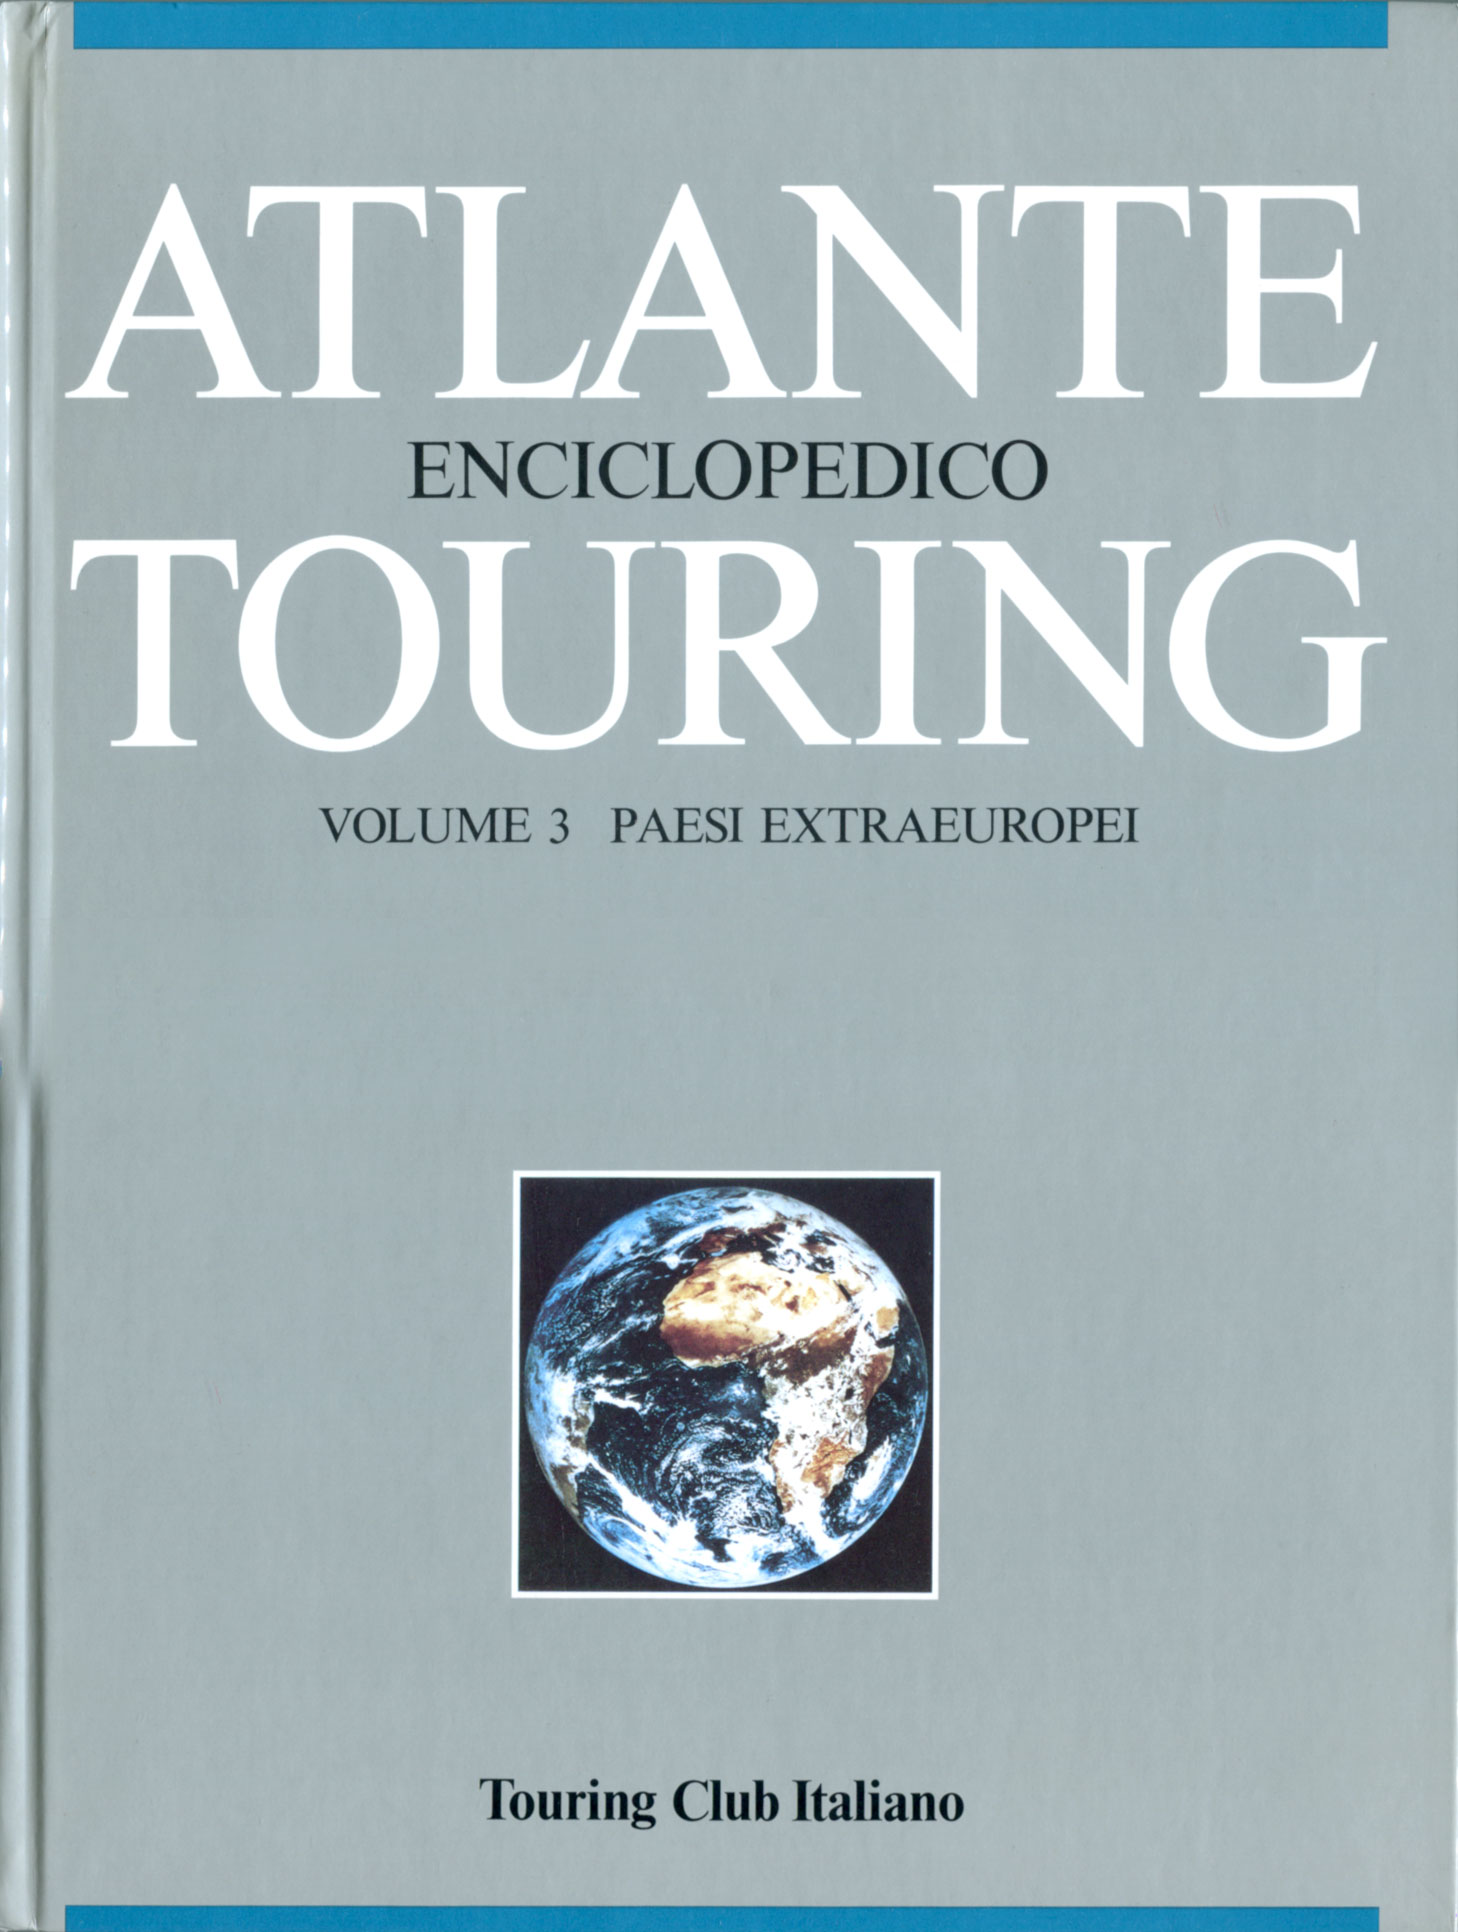 Atlante enciclopedico Touring Vol. 3